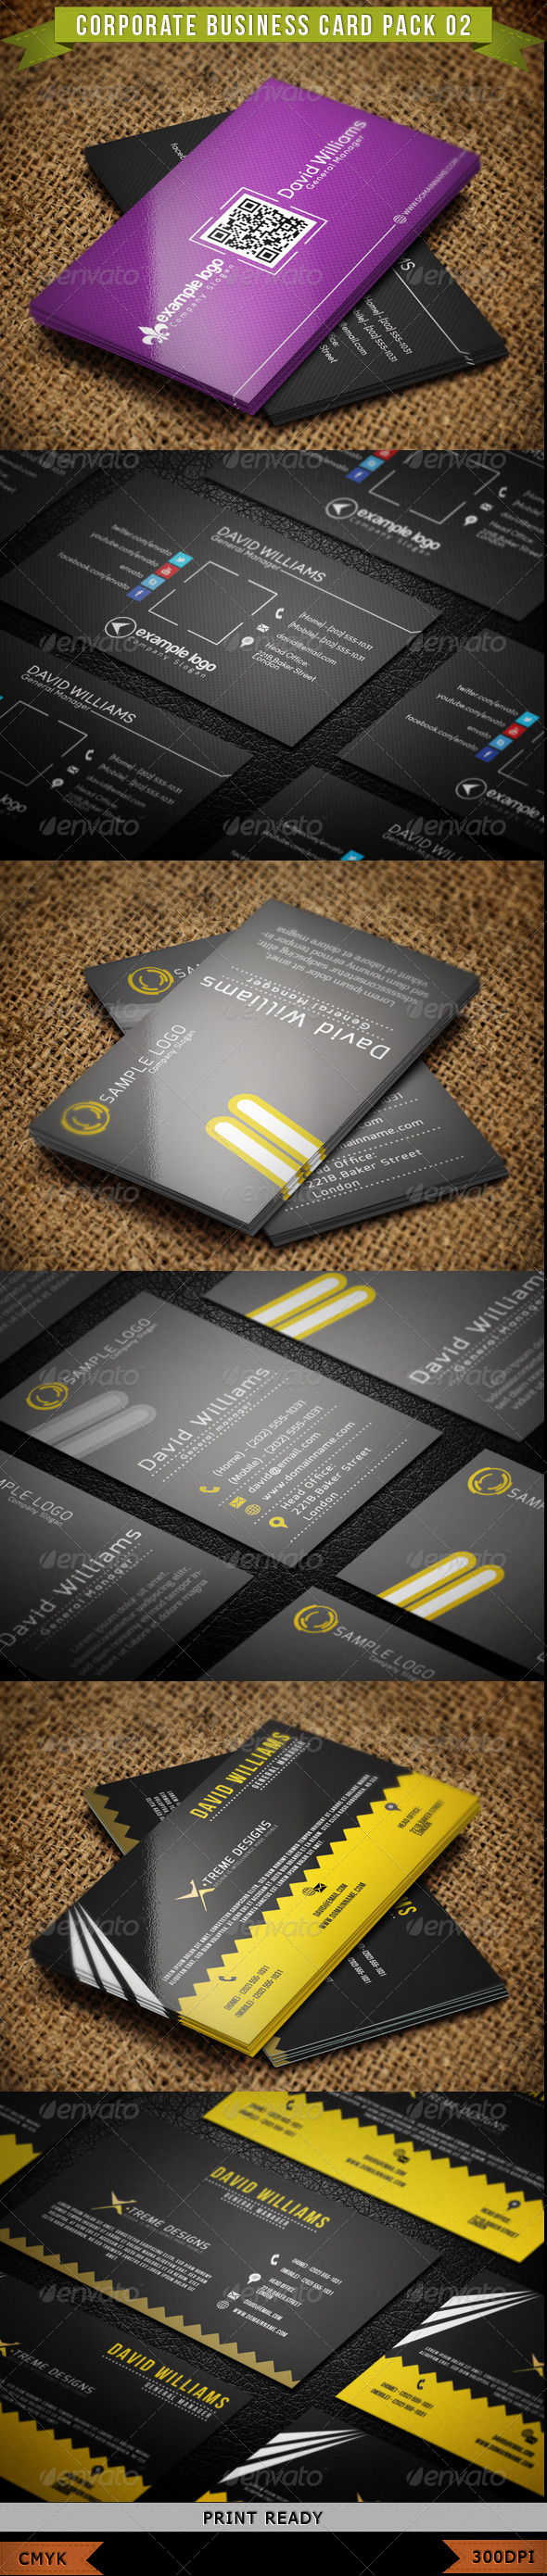 GraphicRiver Corporate Business Card Pack 02 4287337